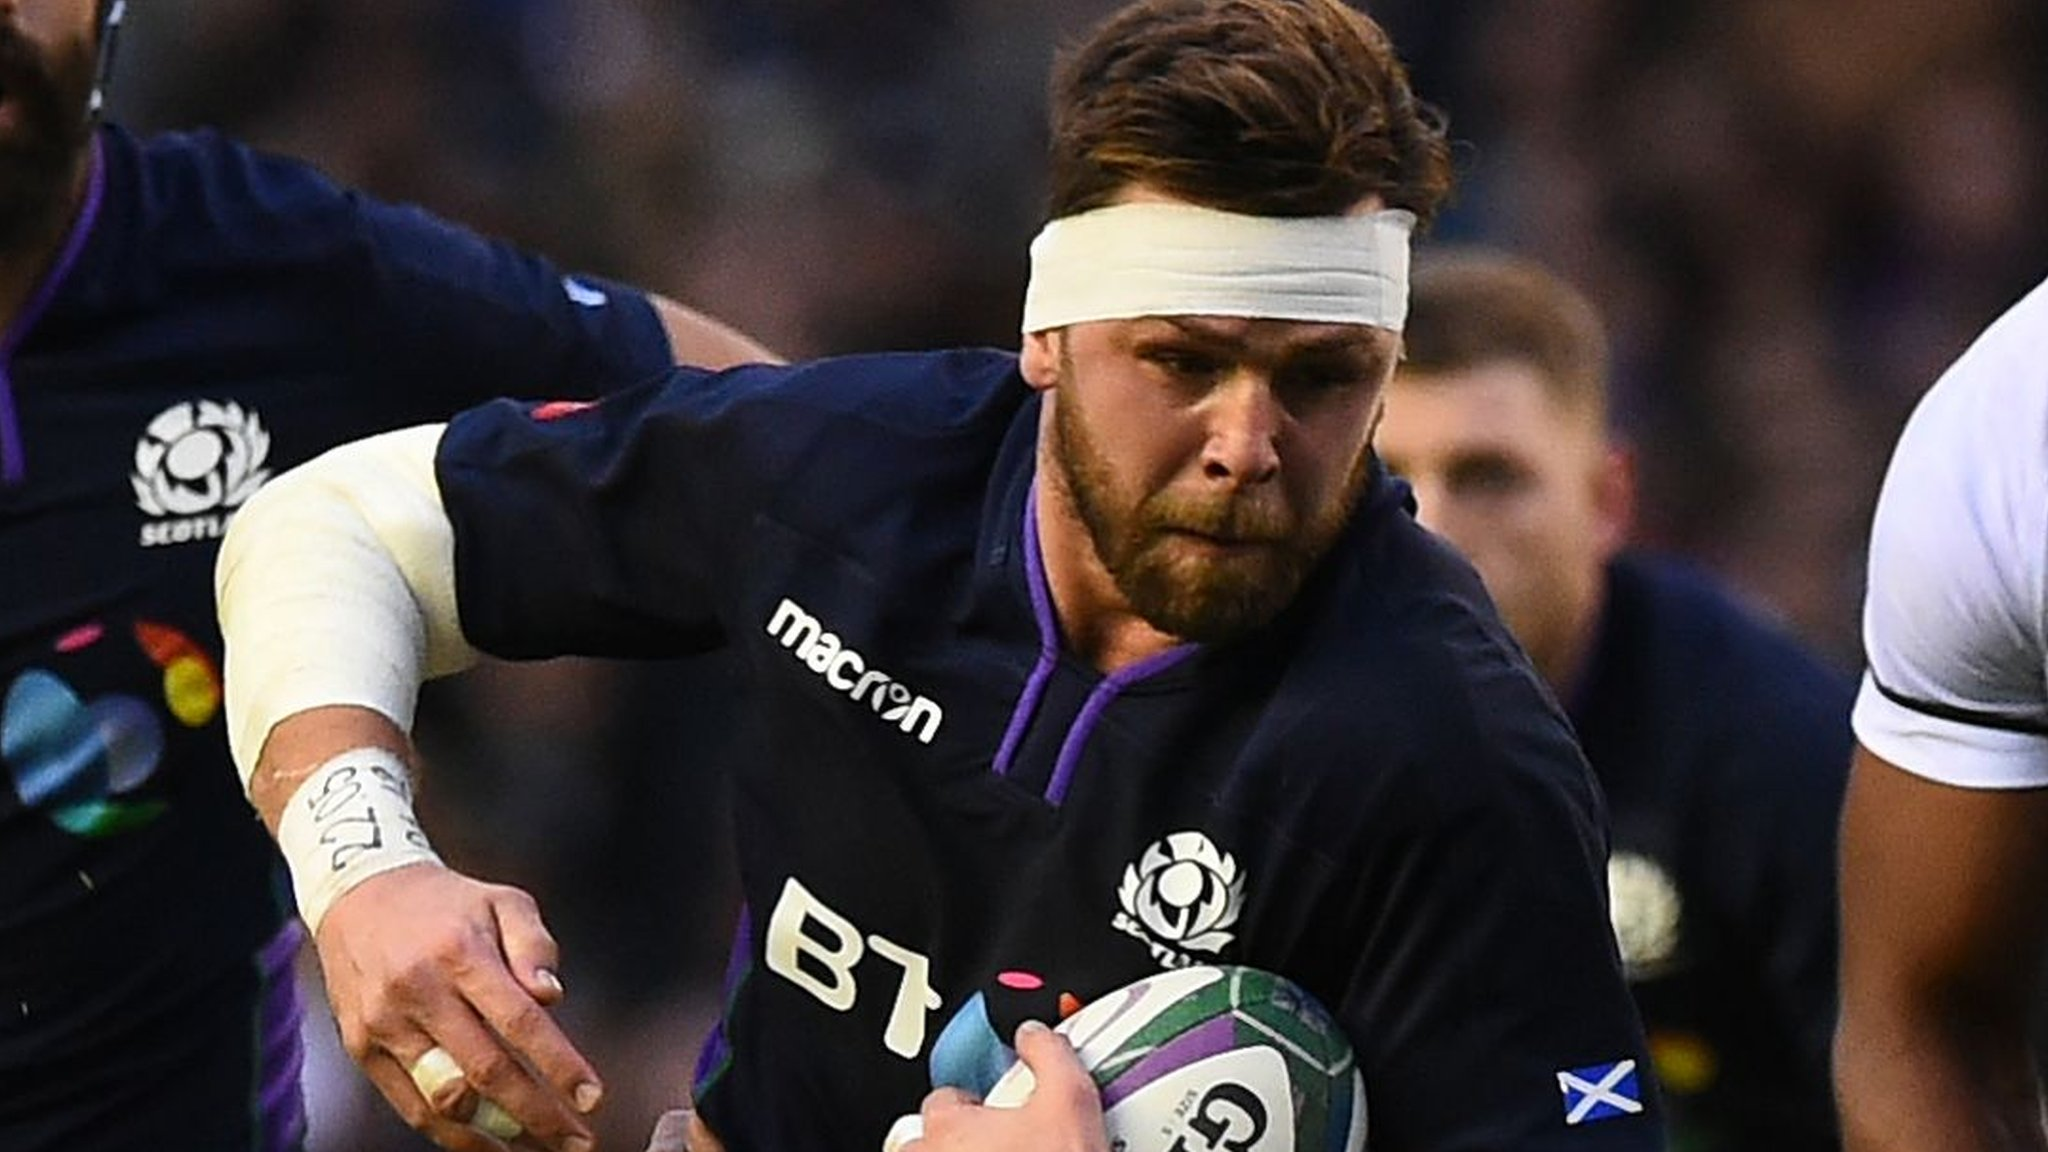 South Africa expect Scotland to play like Super Rugby side